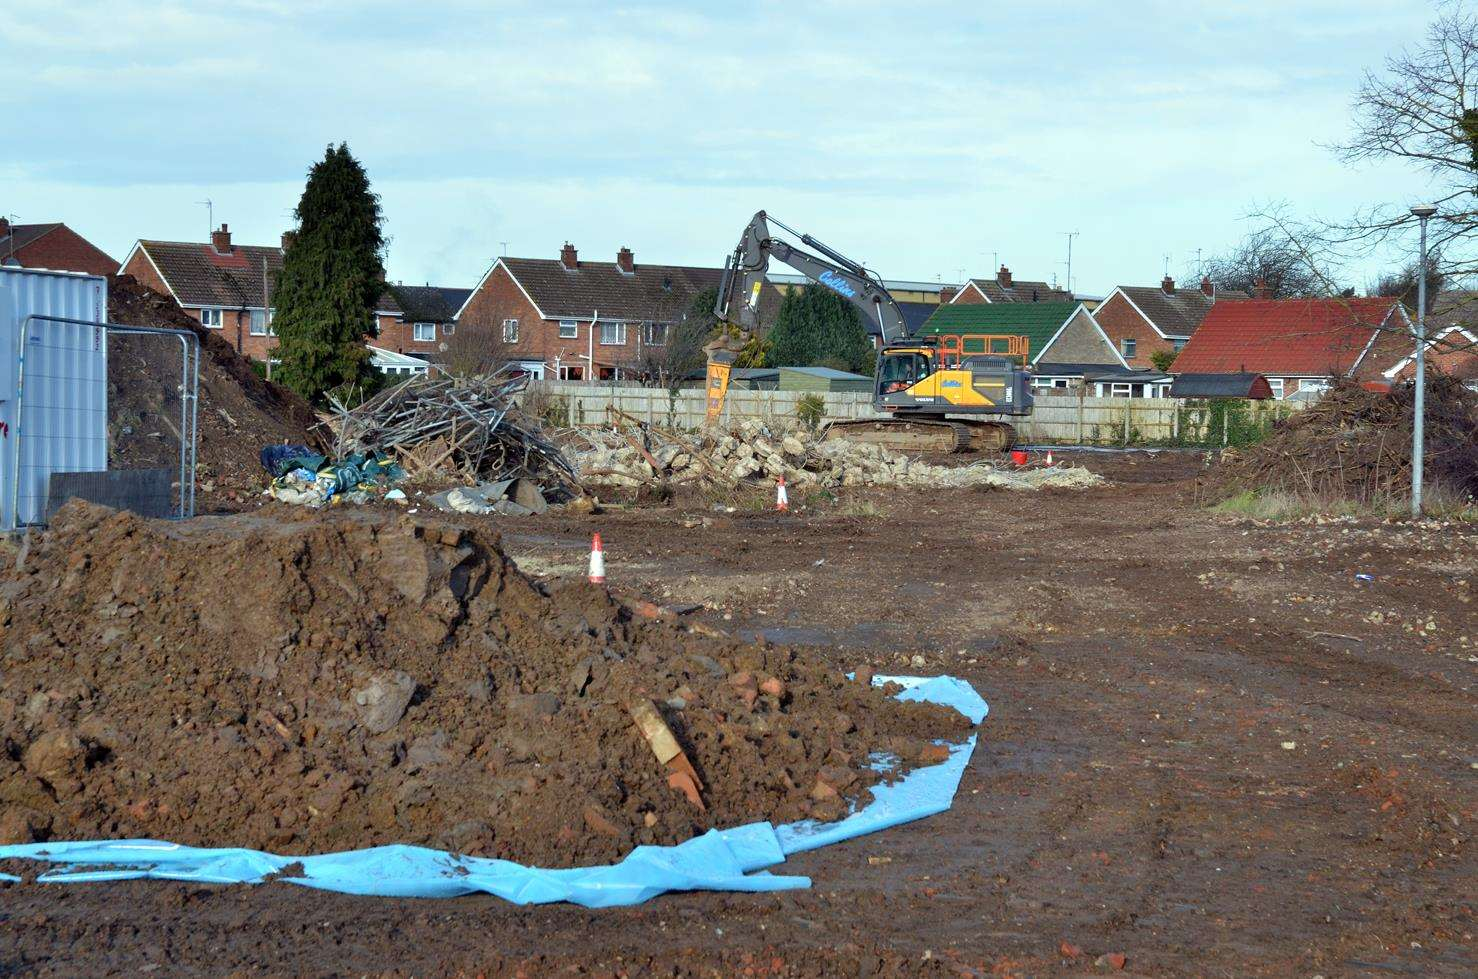 The site of the new Lidl supermarket is being prepared for building work to start in March. (220119-17)